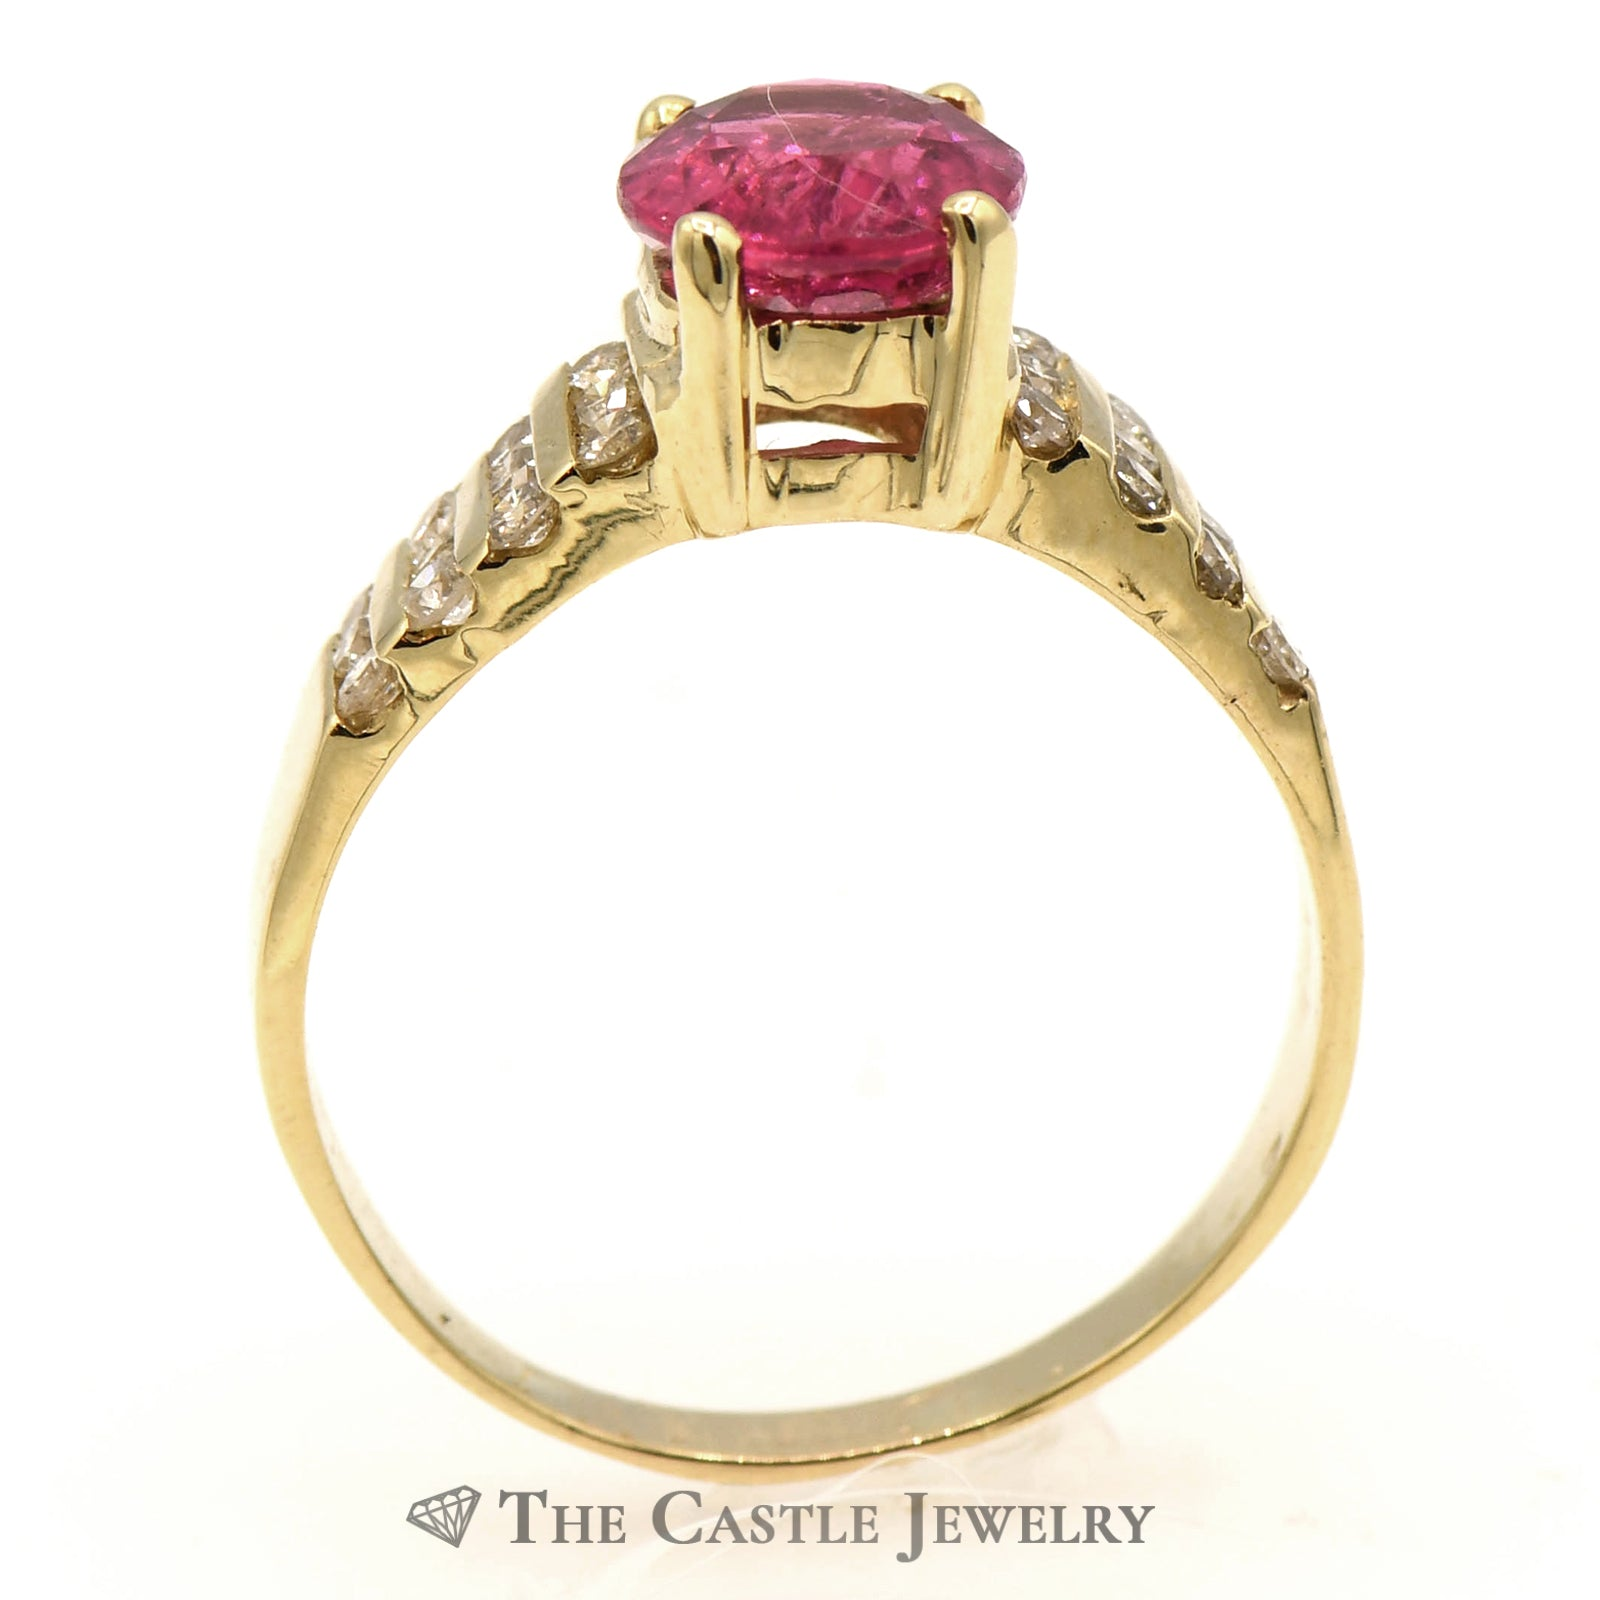 Oval Pink Tourmaline Ring with 8 Rows of Diamonds-1